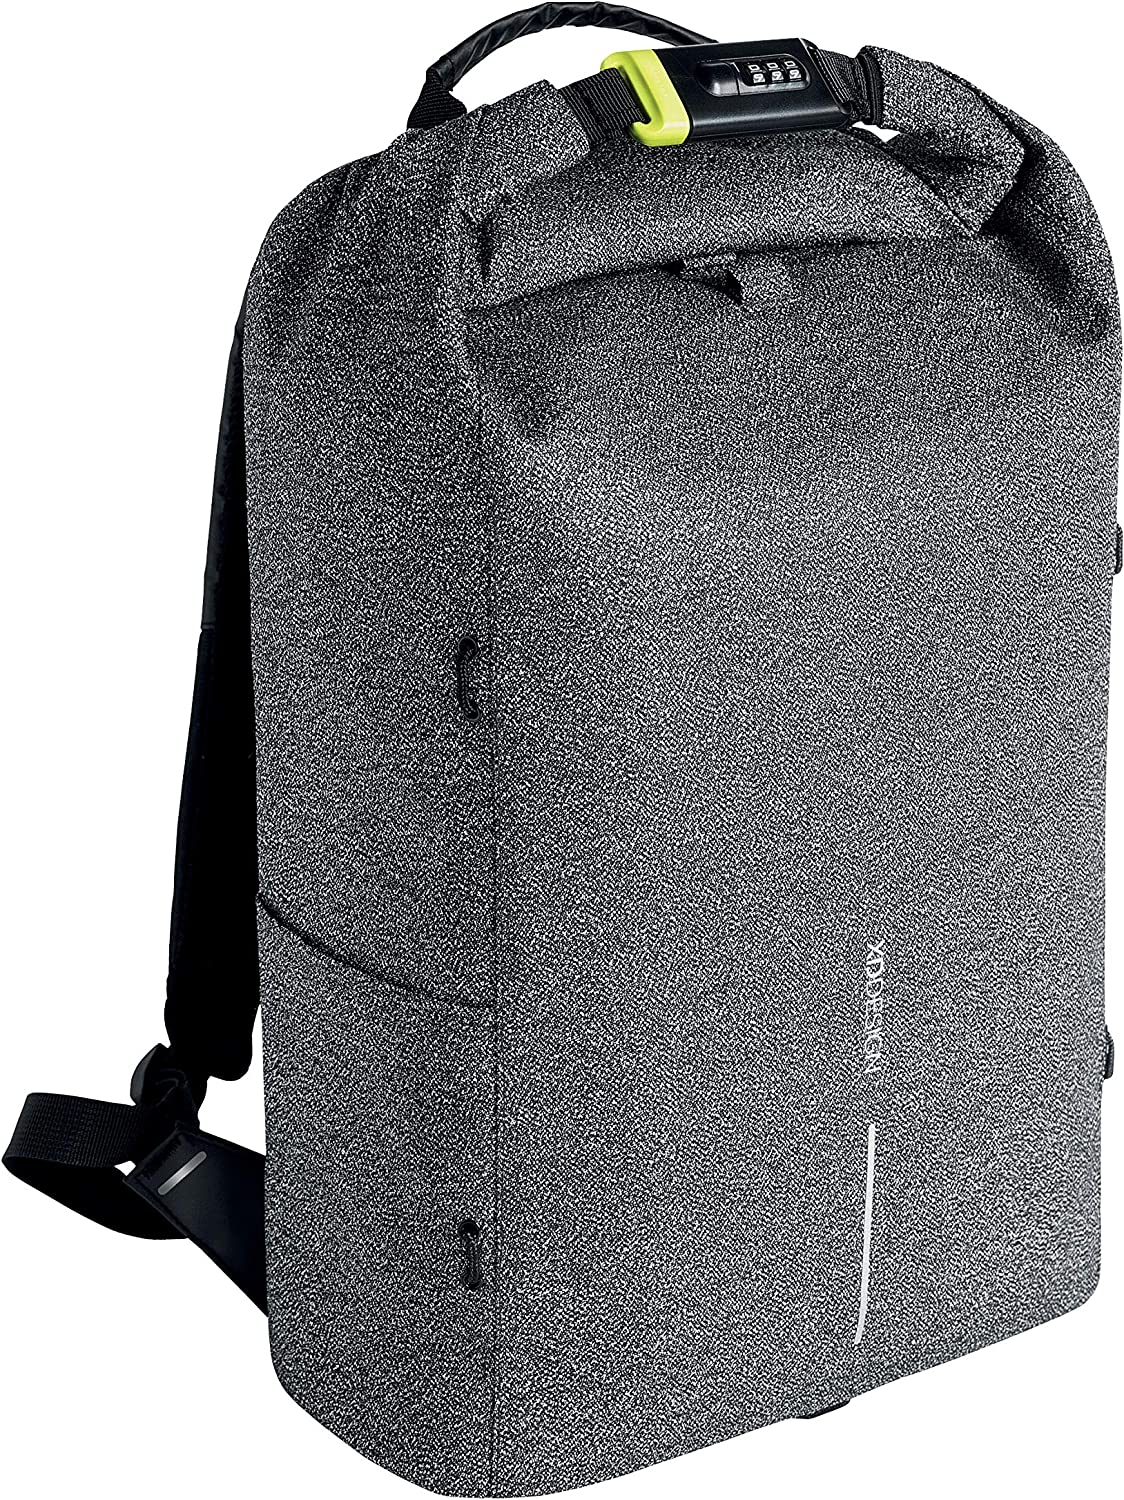 XD Design Urban Anti-Theft Laptop Backpack Cut Proof Grey (Unisex Travel Bag)